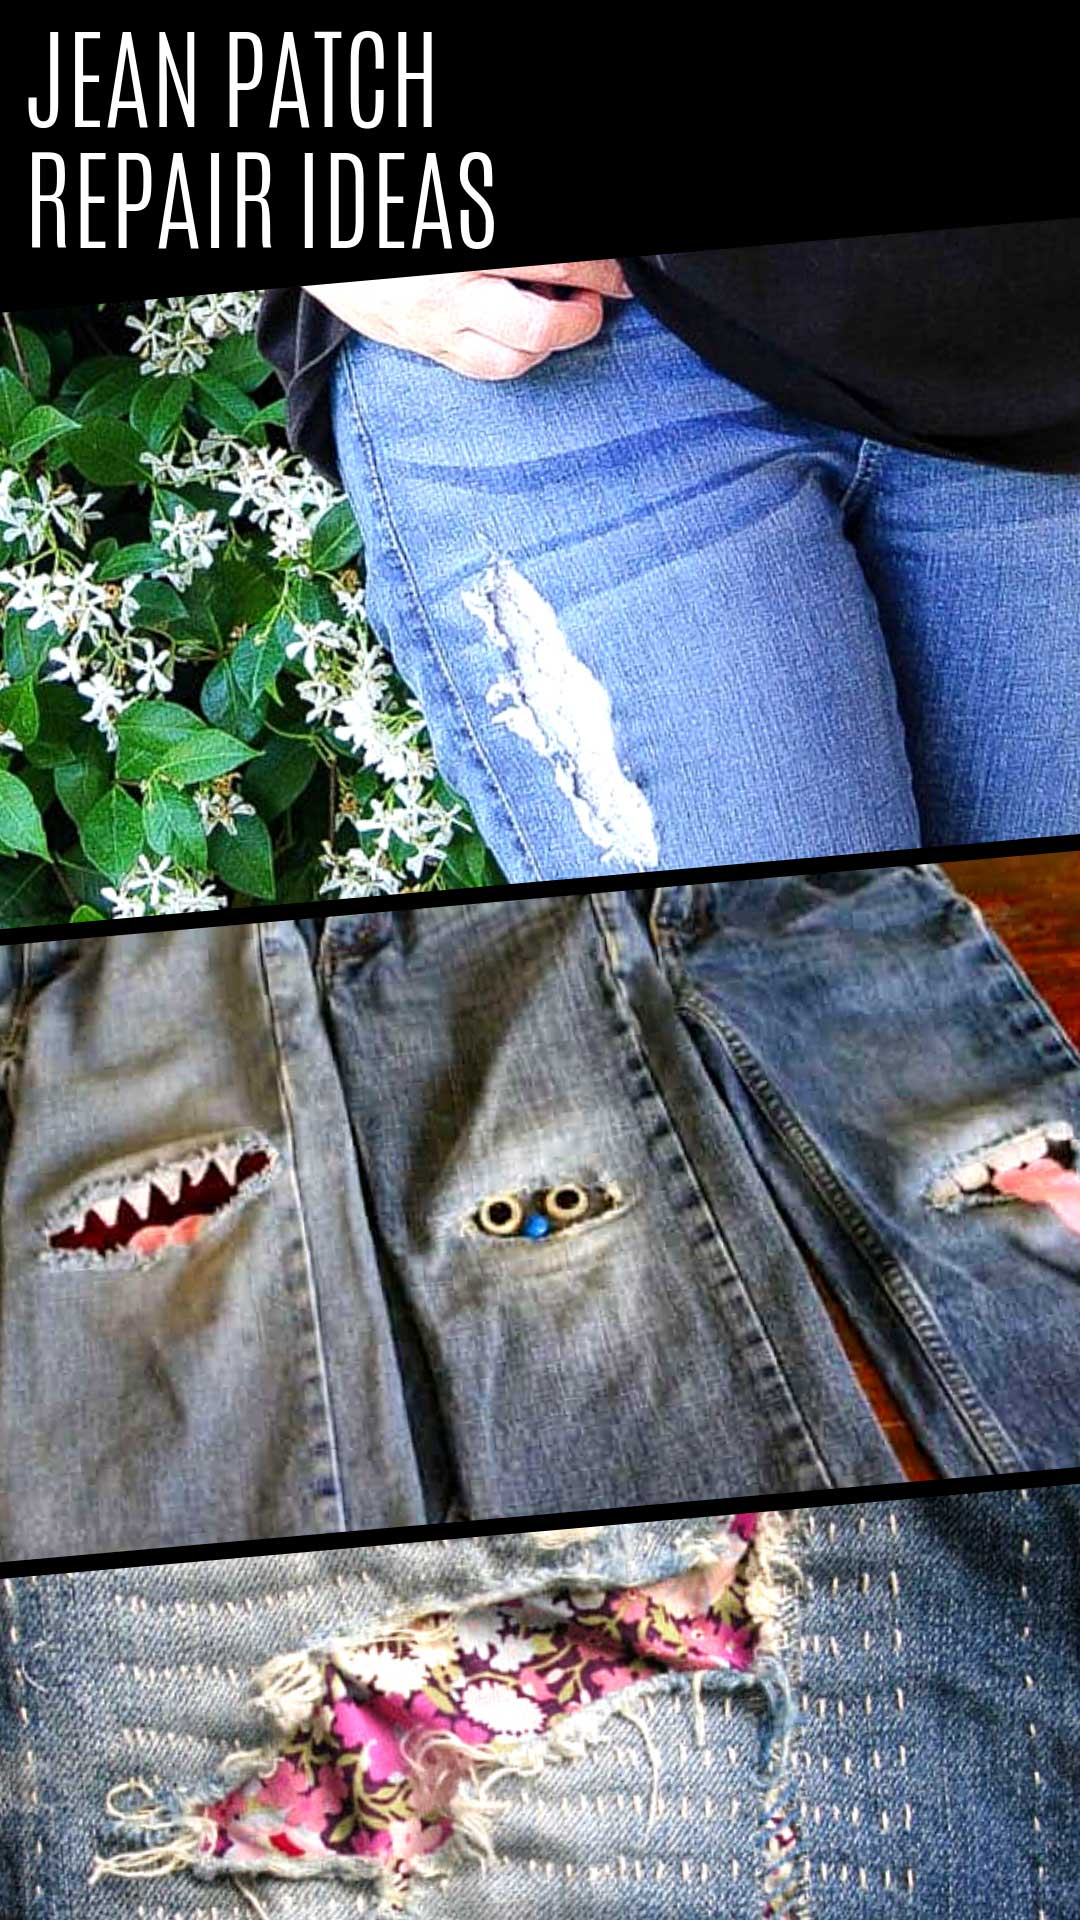 If you want to know how to patch jeans so they look better than they did new check out these genius ideas! My kids loved the monster patches!